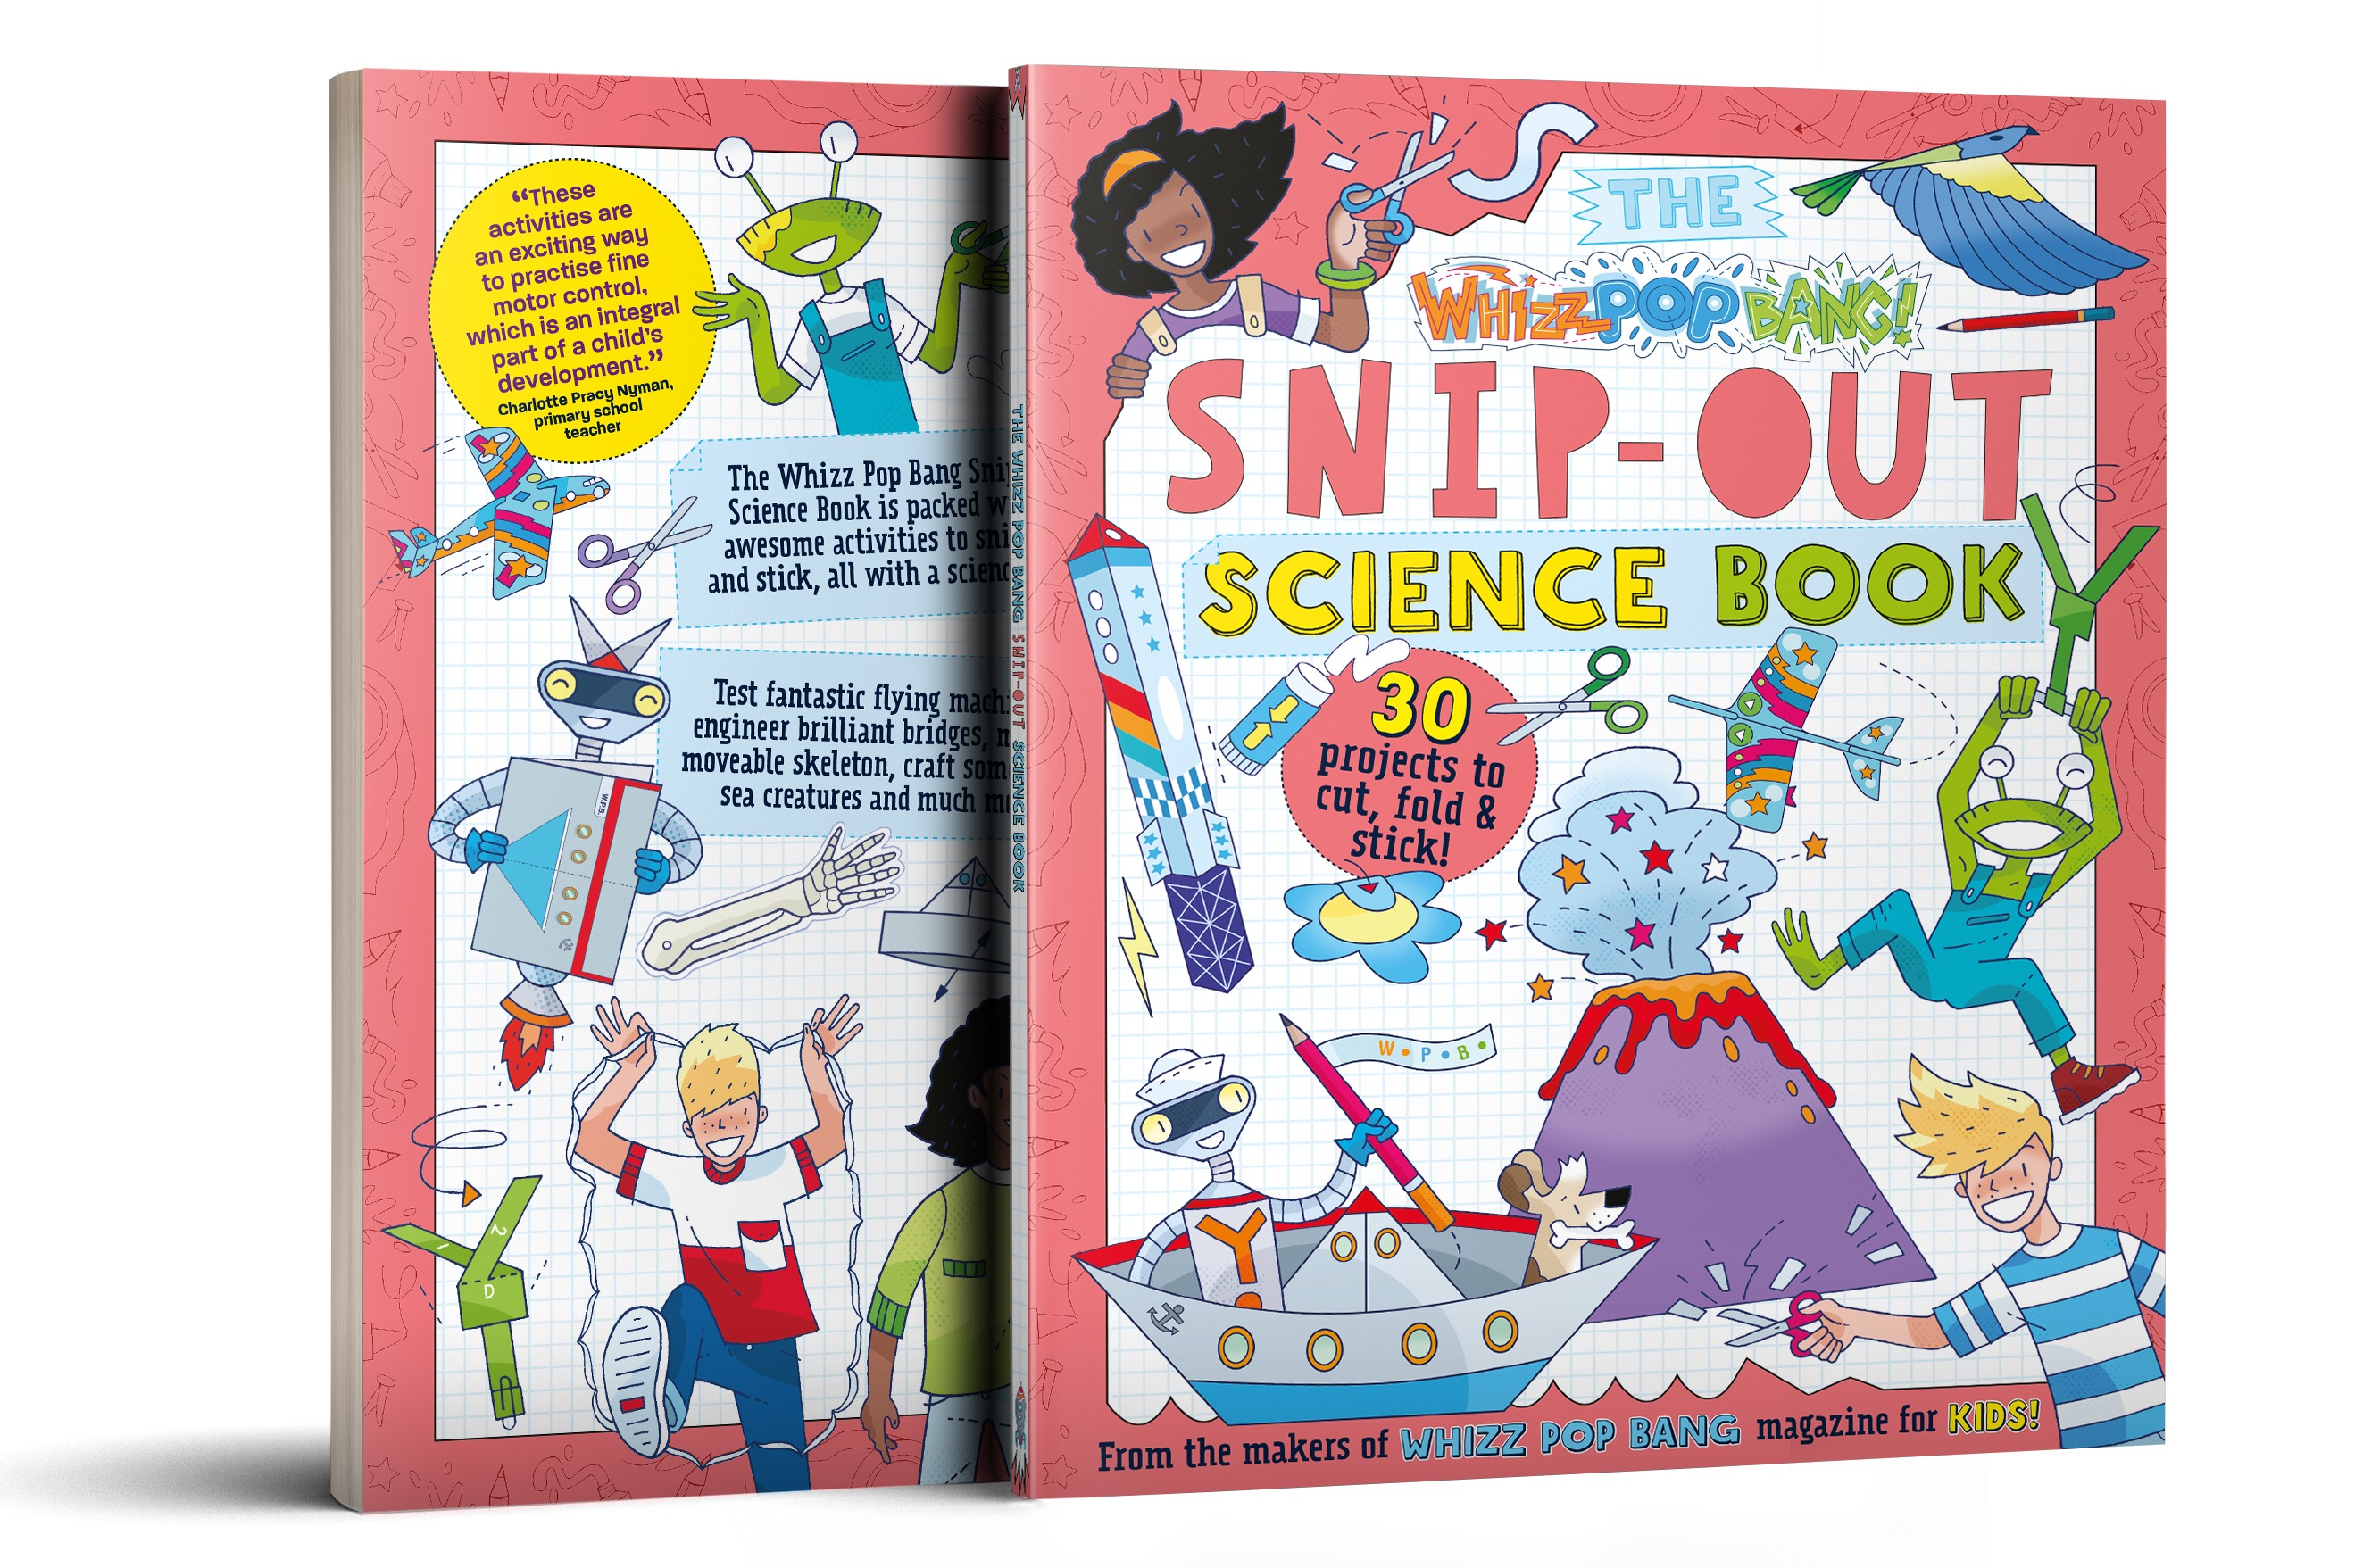 Boys holding their SPY SCIENCE issues of Whizz Pop Bang magazine